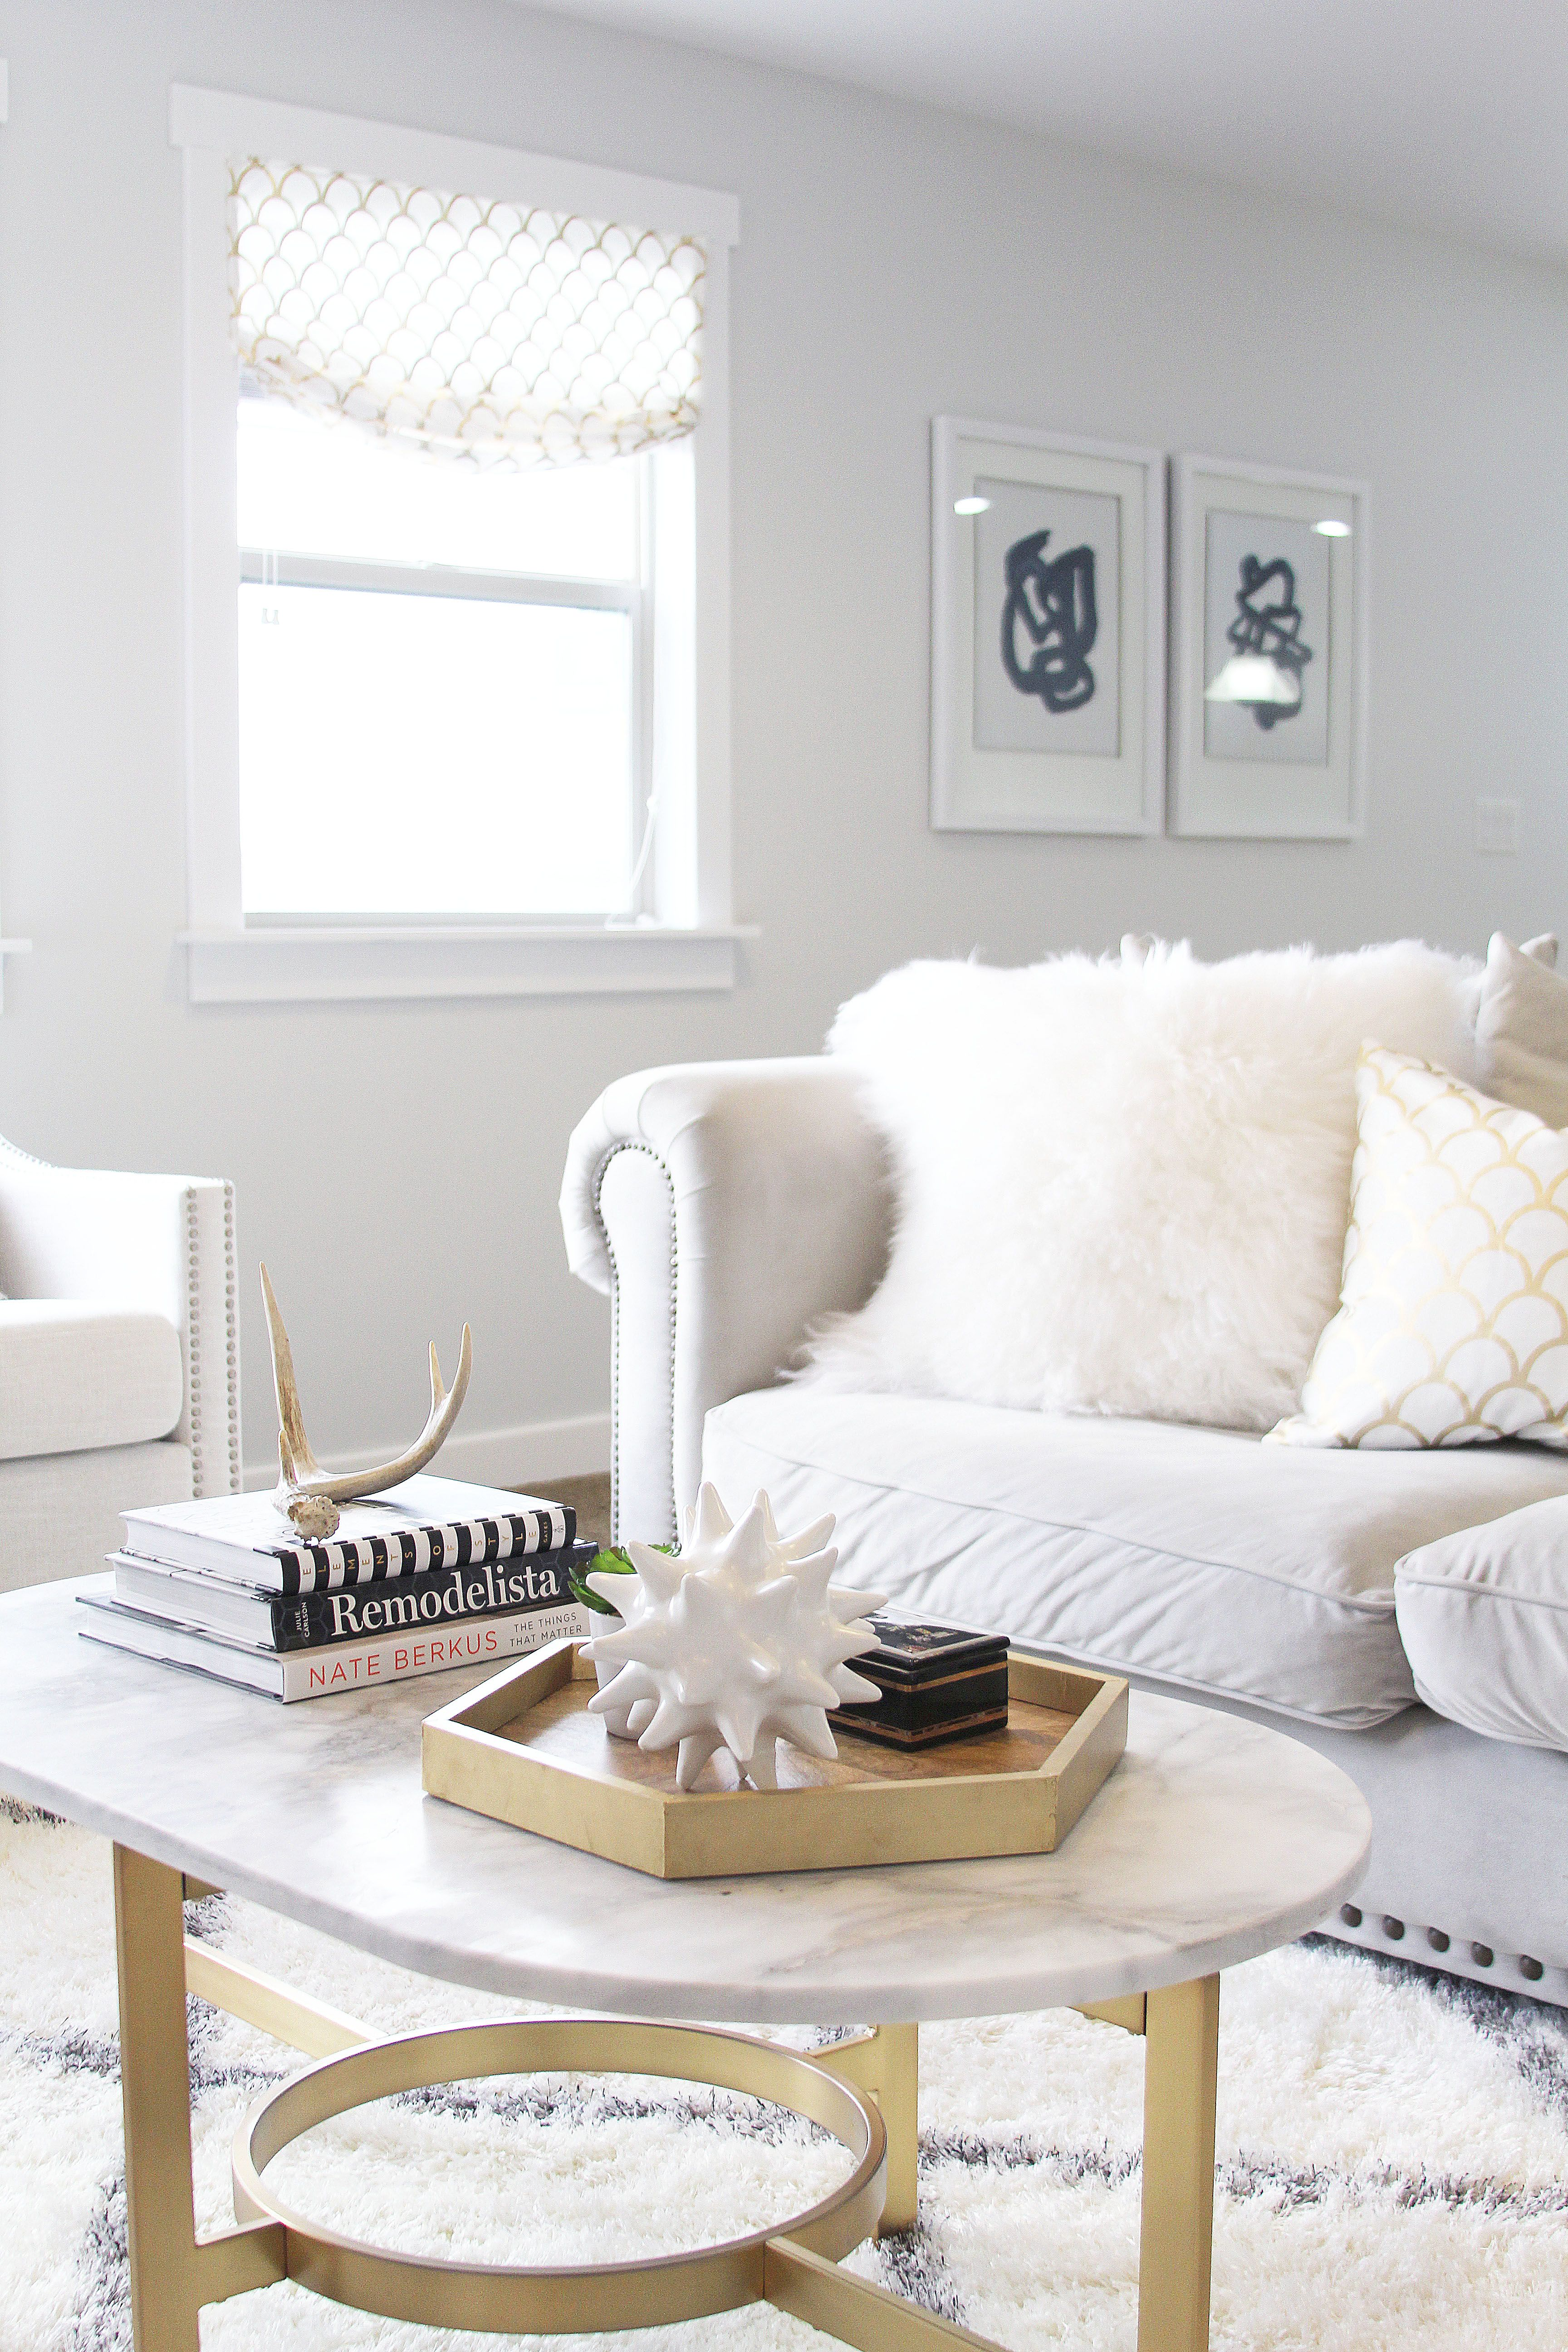 White Paint Colors For Living Room Love This Paint Color Bmpaper White P A I N T C O L O R S